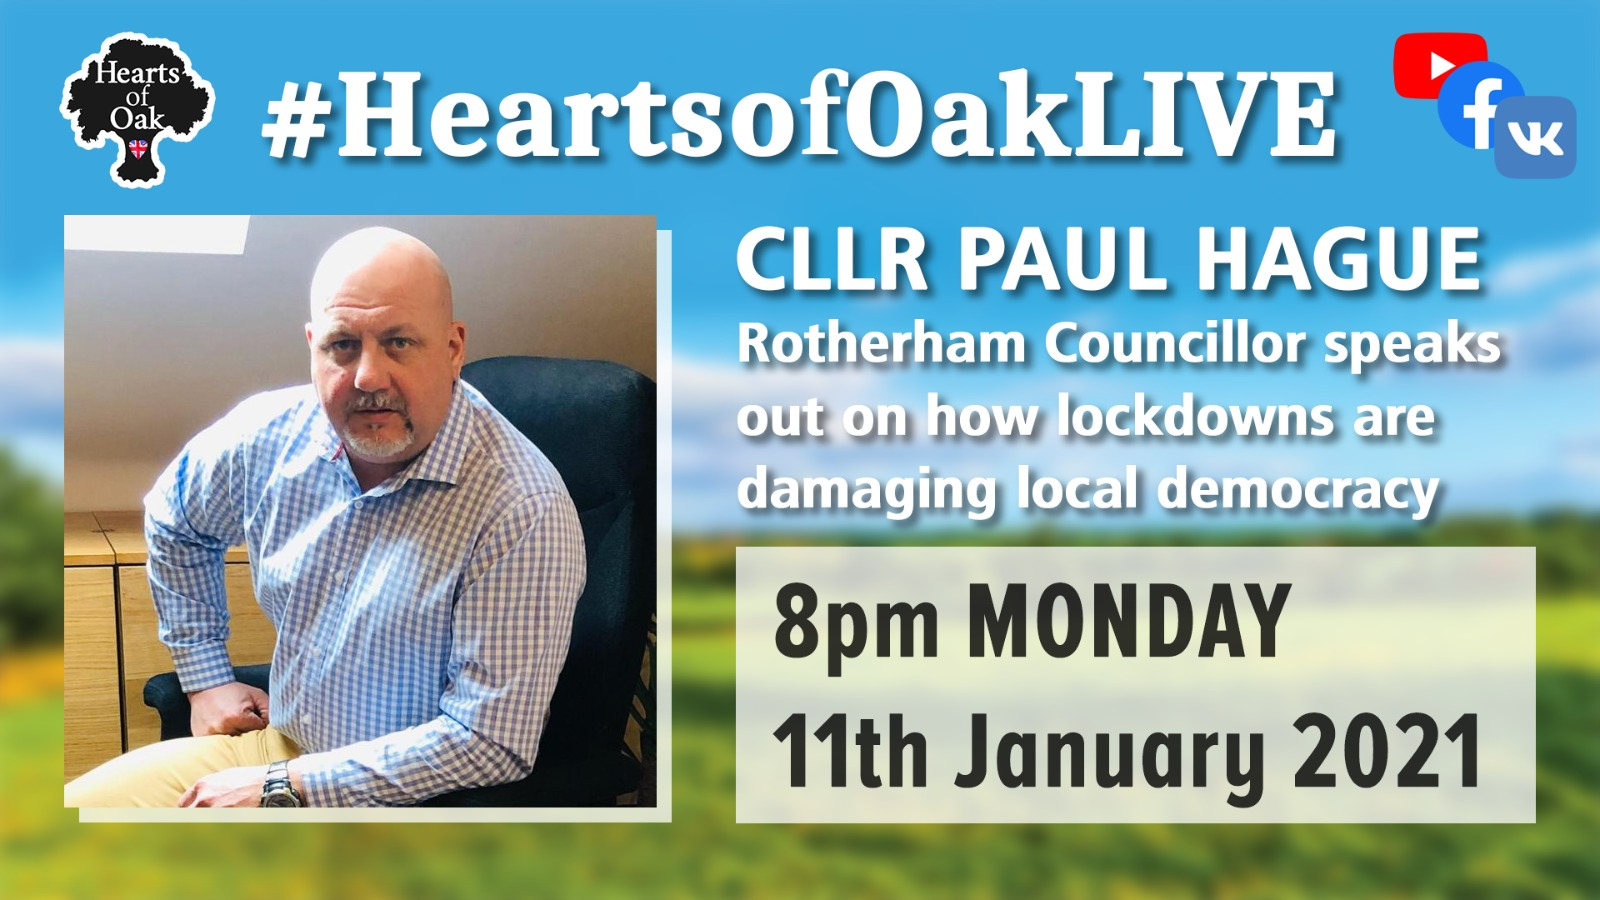 Cllr Paul Hague (Rotherham Councillor) speaks out on how lockdowns are damaging local democracy